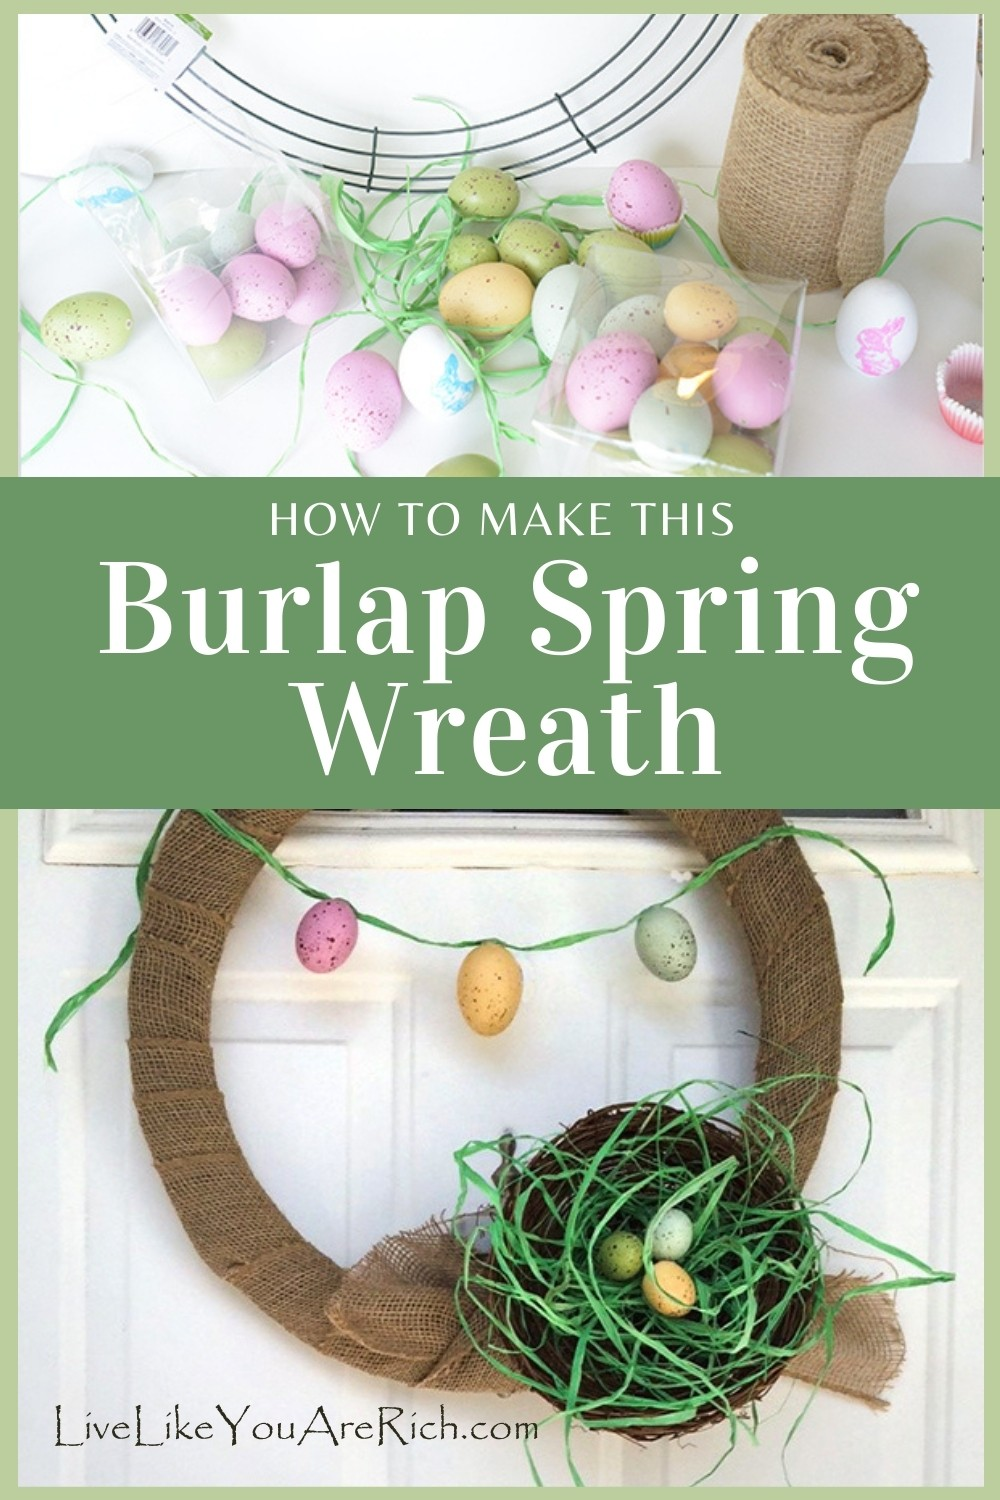 How to Make This Burlap Spring Wreath